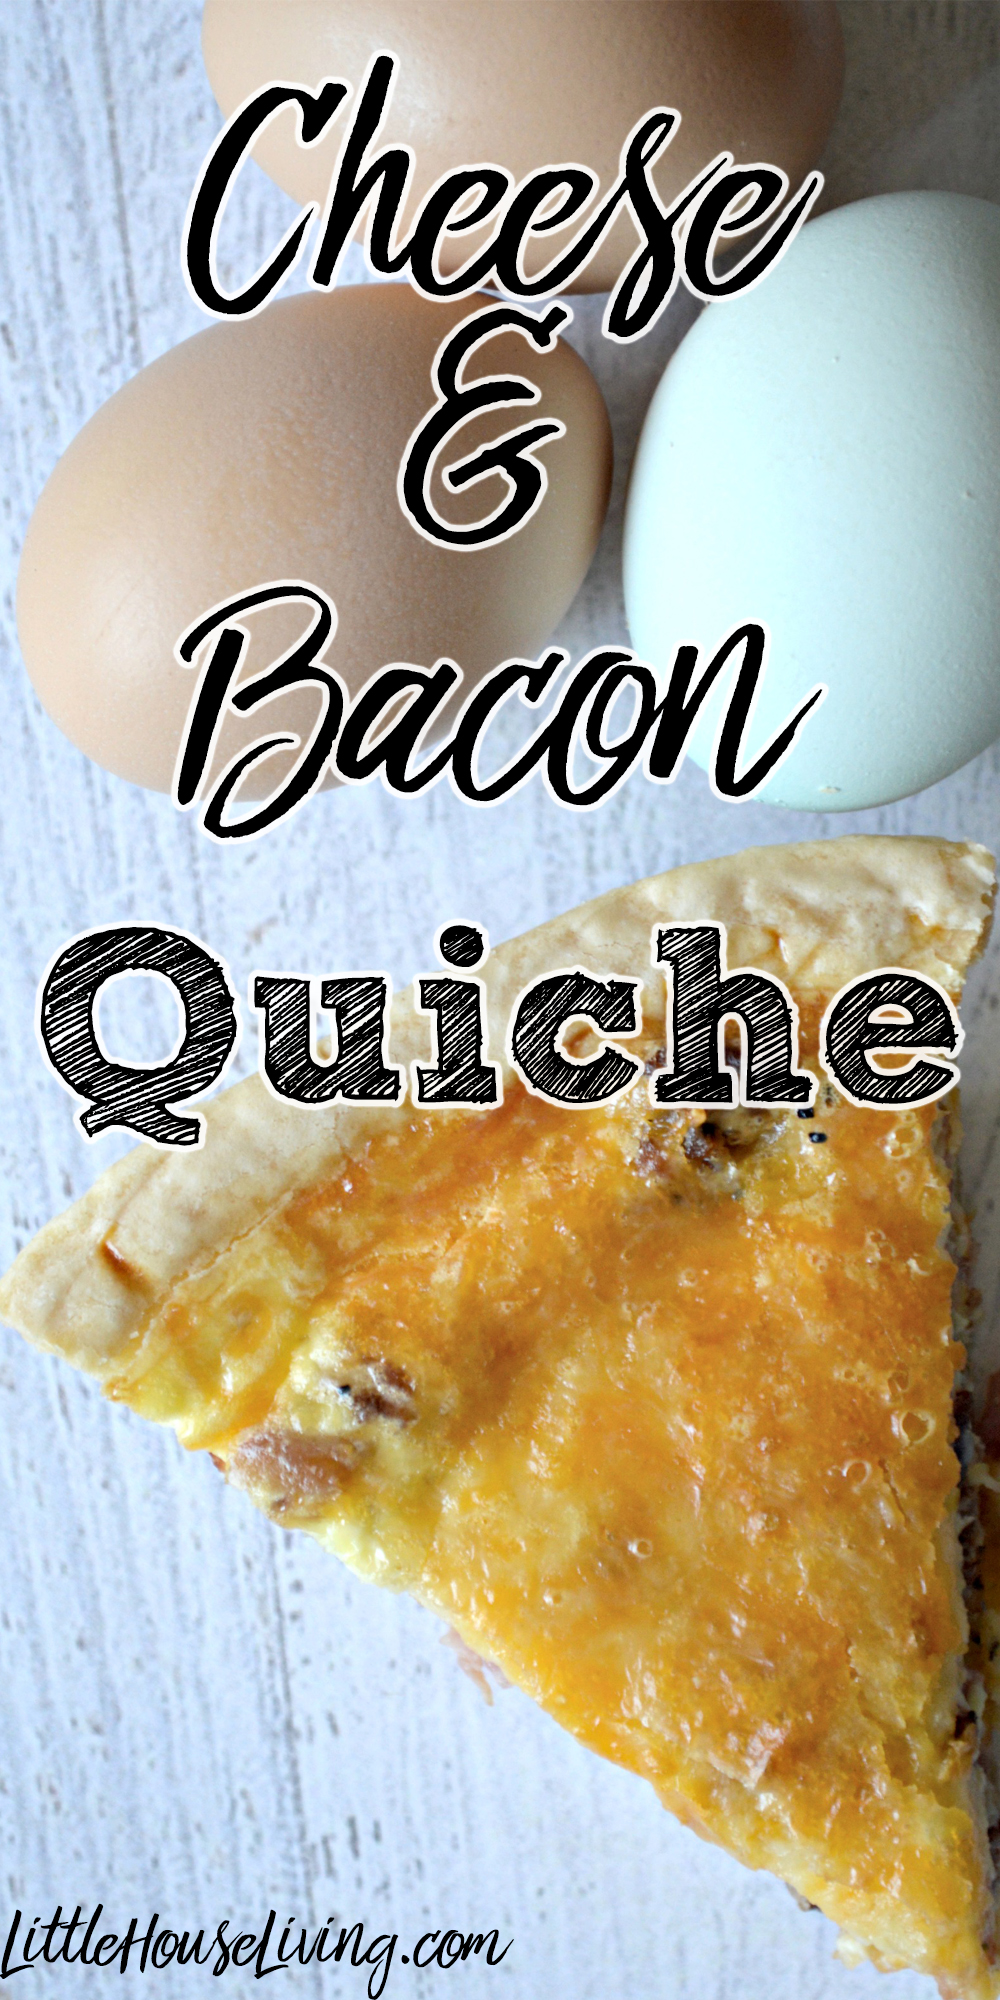 Simple and delicious Cheese and Bacon Quiche recipe!